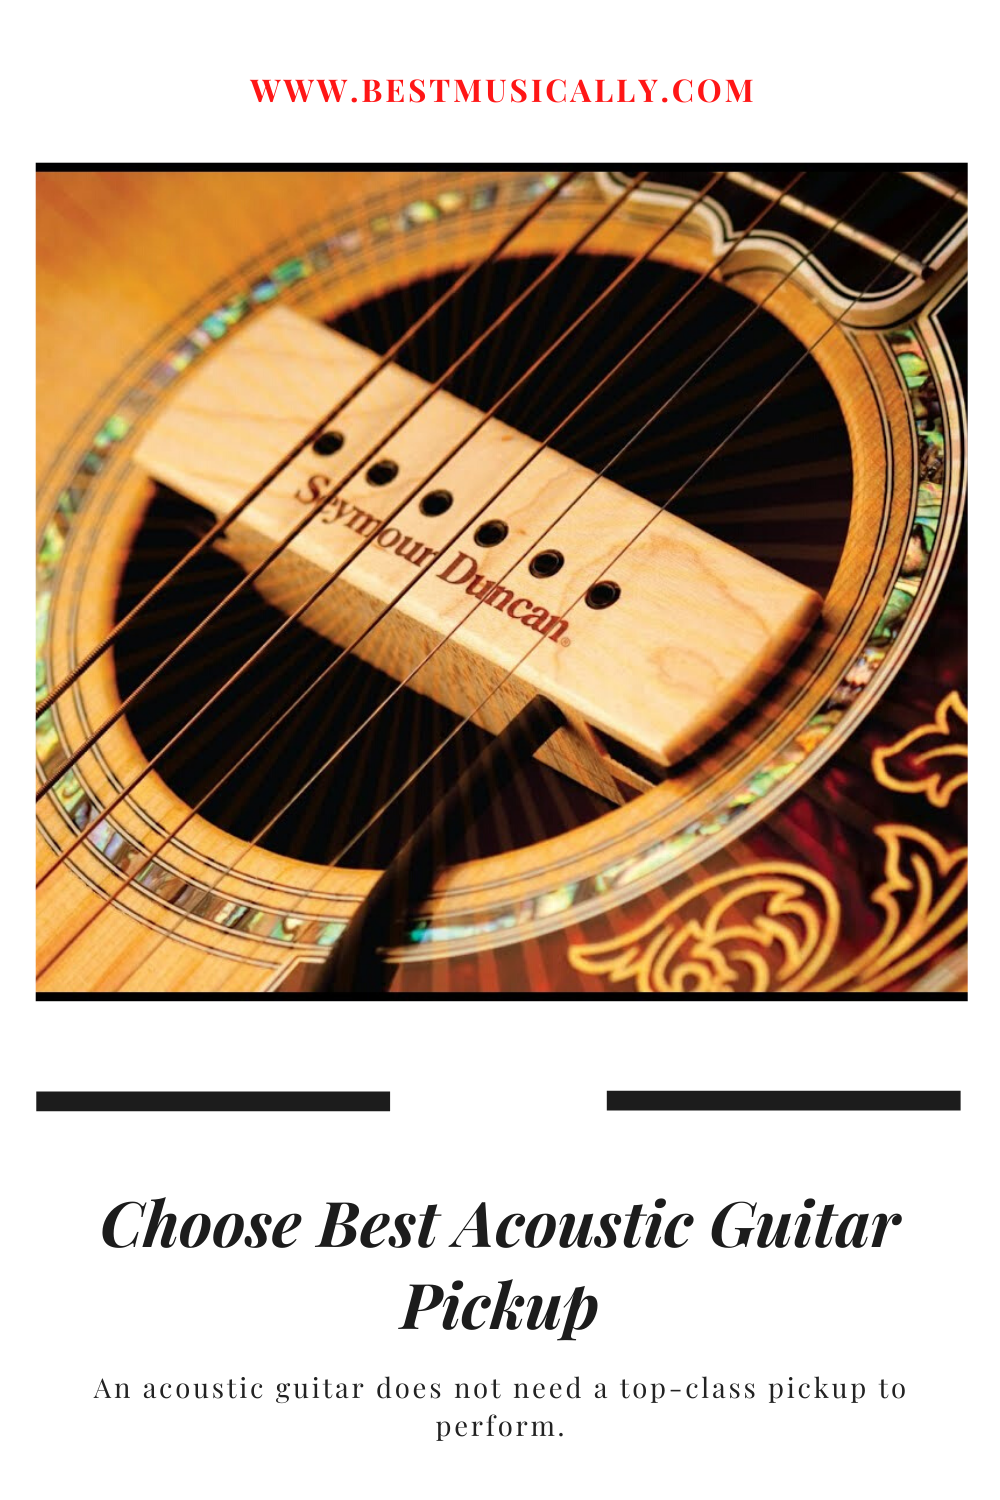 Why You Should Choose Best Acoustic Guitar Pickup Acoustic Guitar Pickups Best Acoustic Guitar Acoustic Guitar